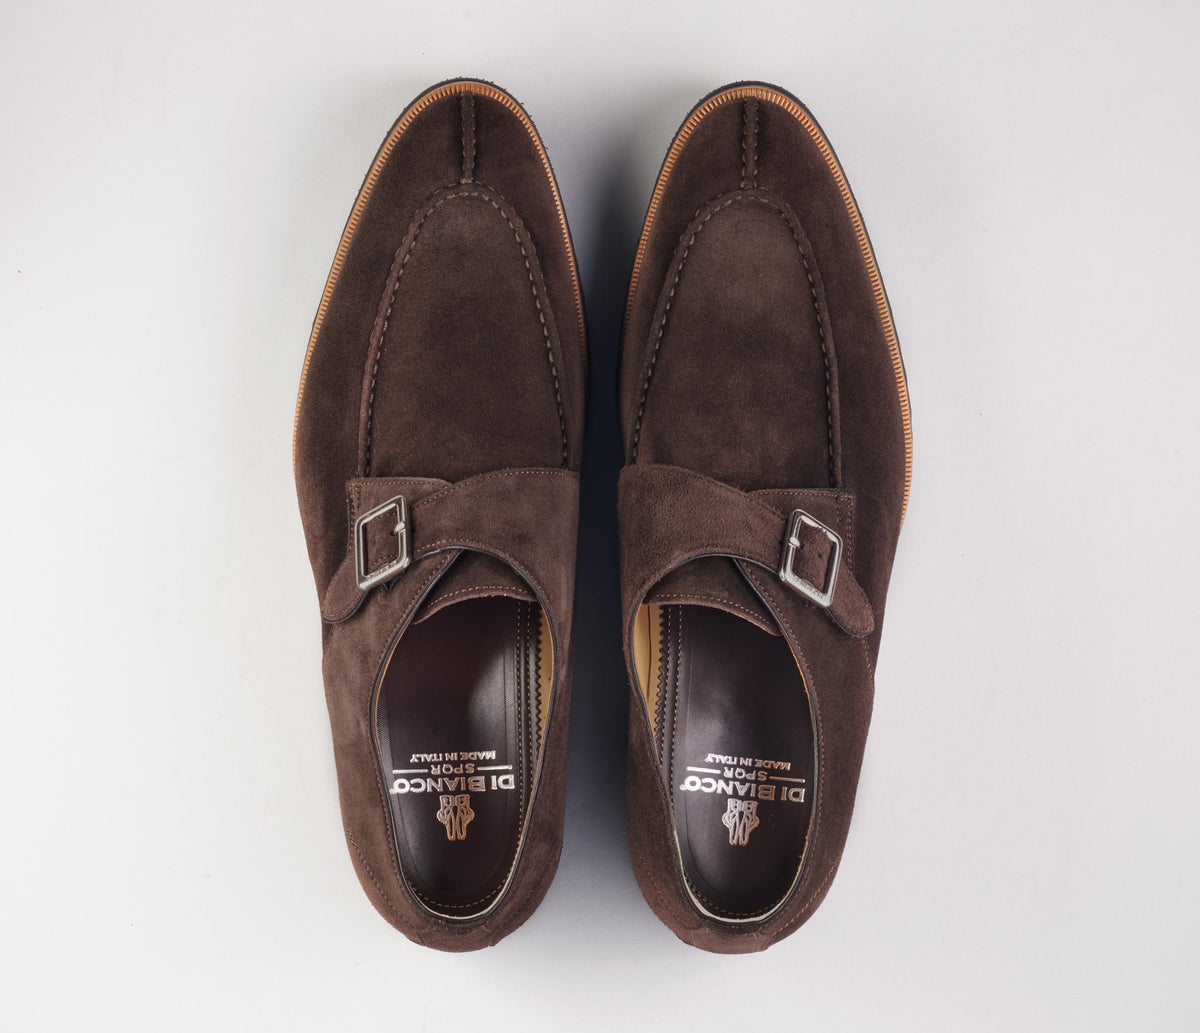 The Venezia Suede Corvino Monk Strap Shoes